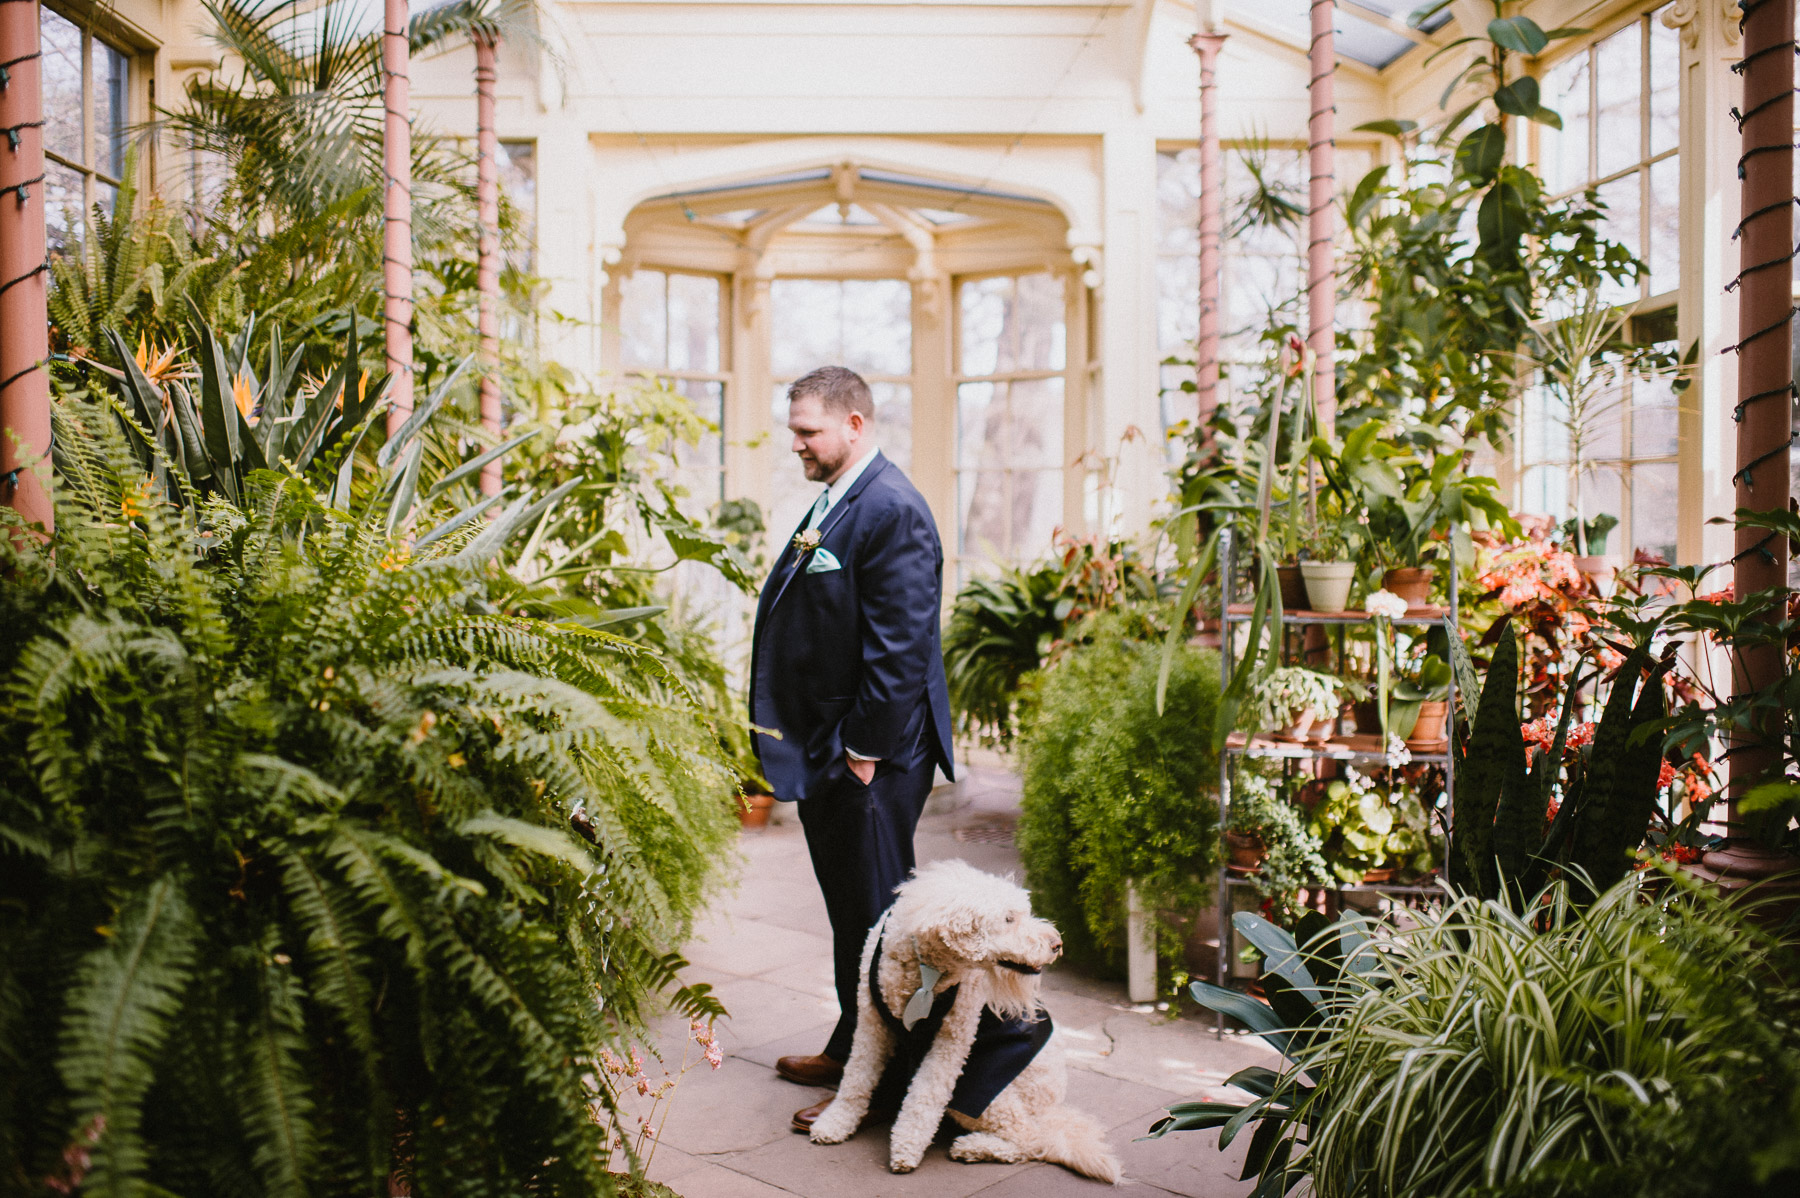 The_Carriage_House_at_Rockwood_Park_wedding_photo037.jpg